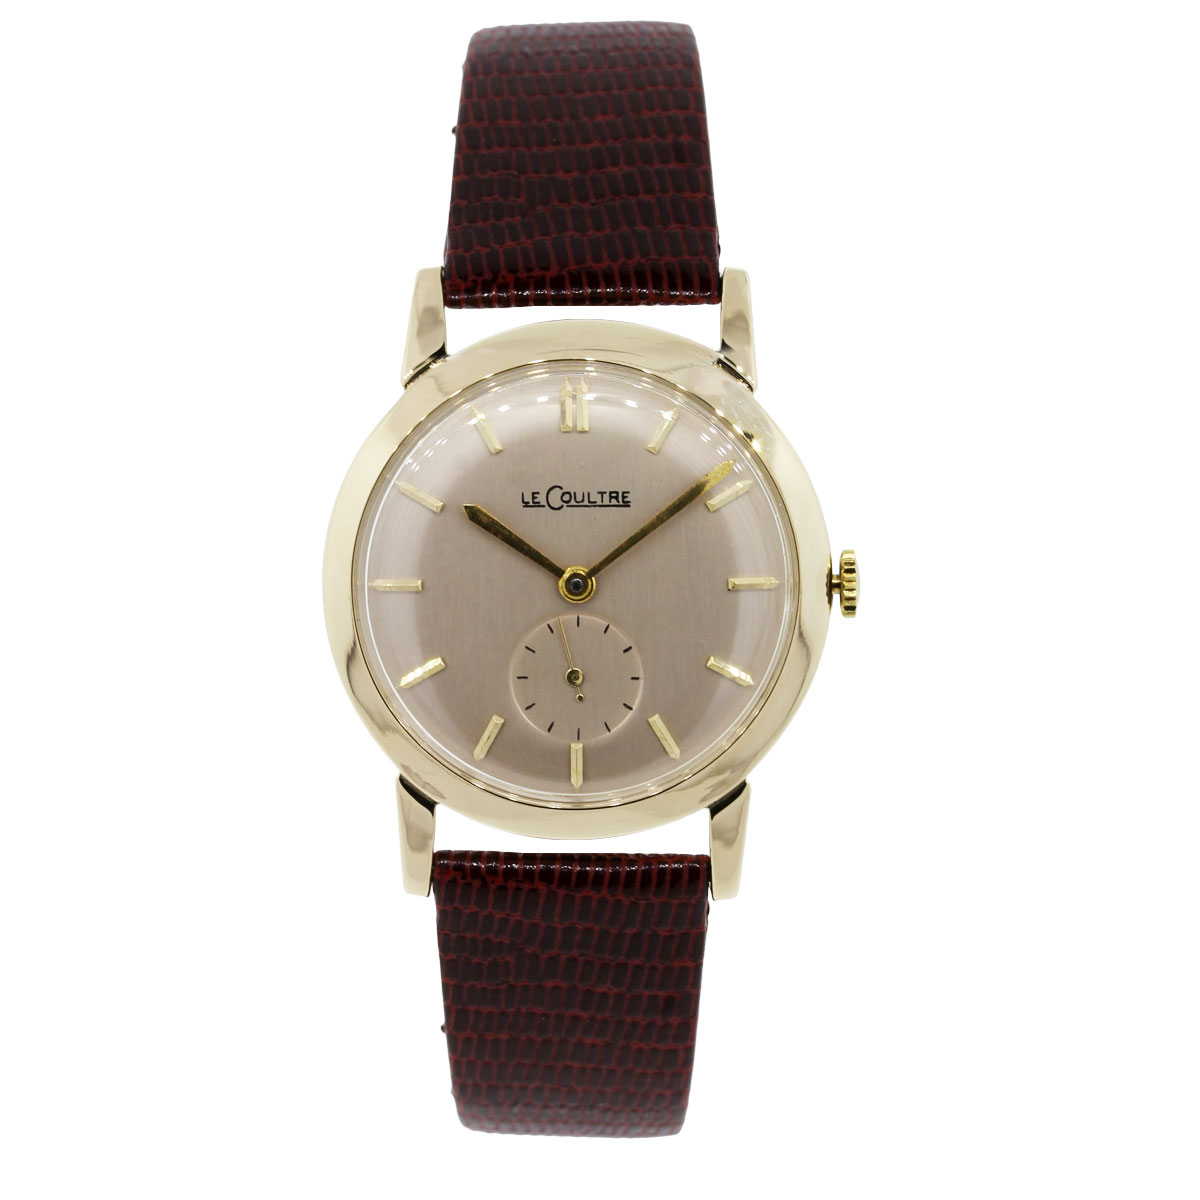 LeCoultre 14k Yellow Gold On Leather Watch